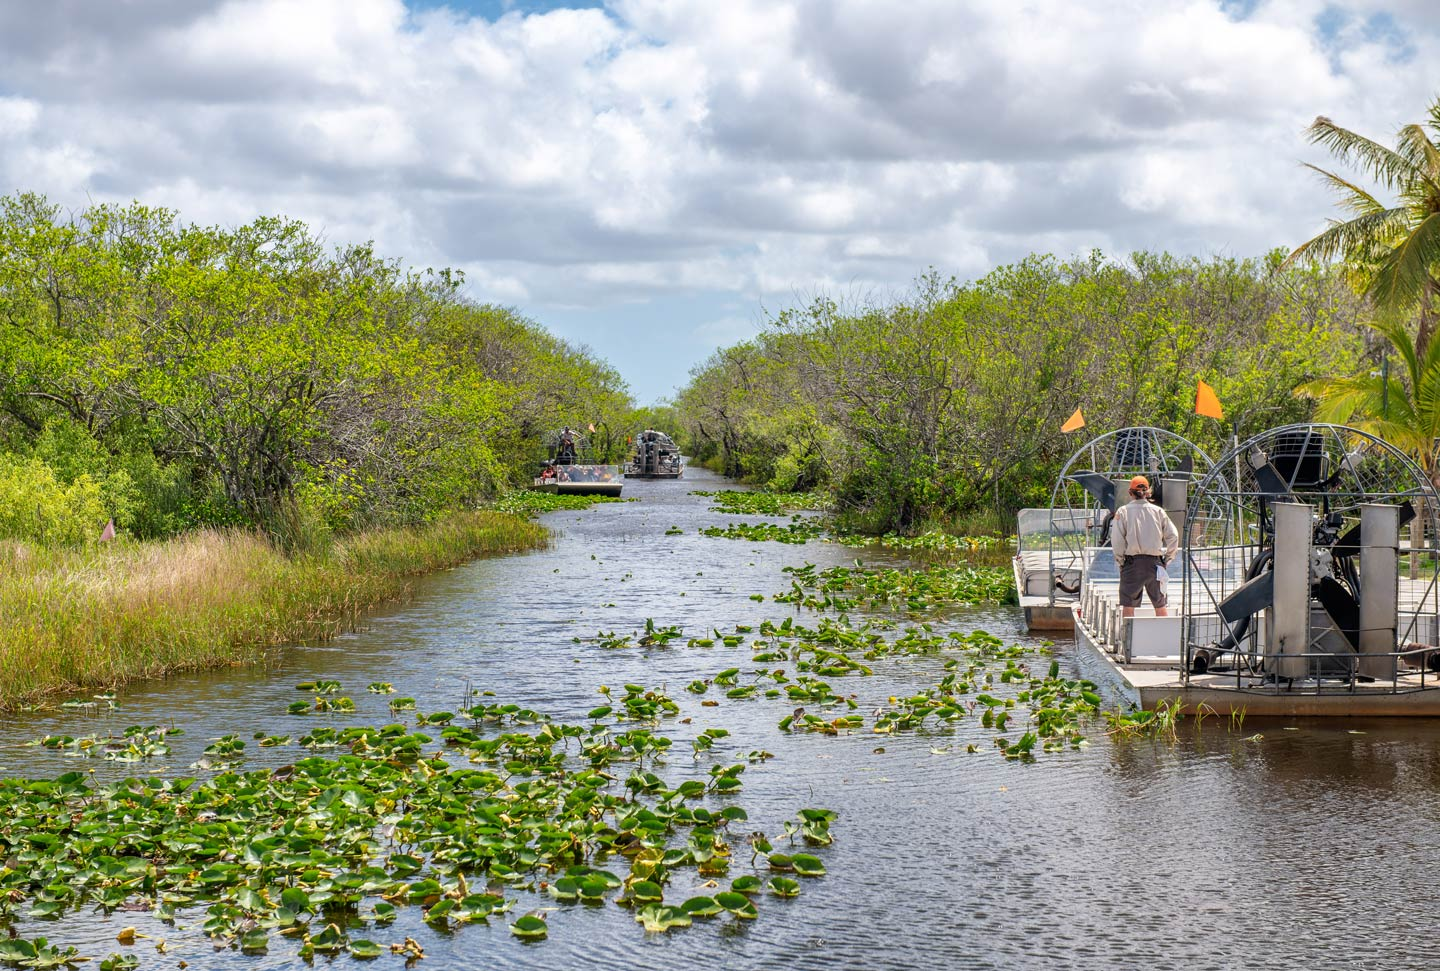 Airboats on the waters of the Everglades, Florida